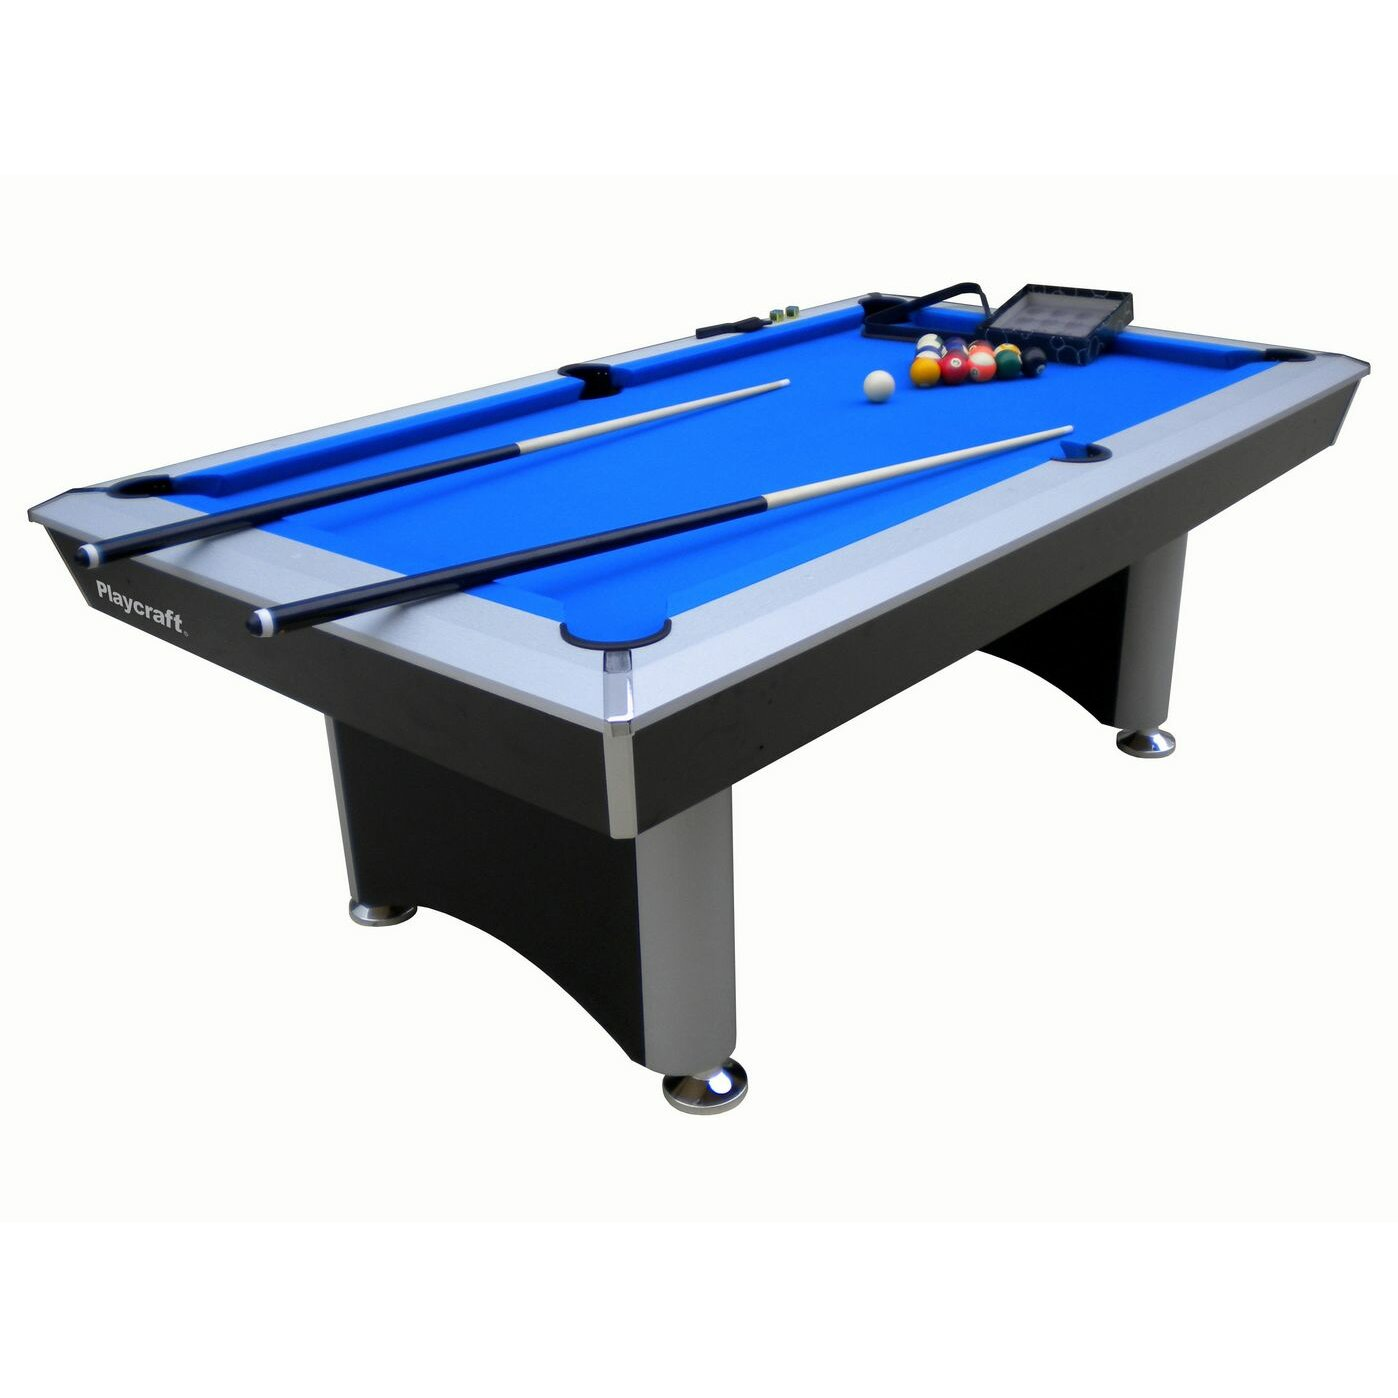 Playcraft 3 in 1 sprint 7 39 pool table reviews wayfair - Billard table a manger ...